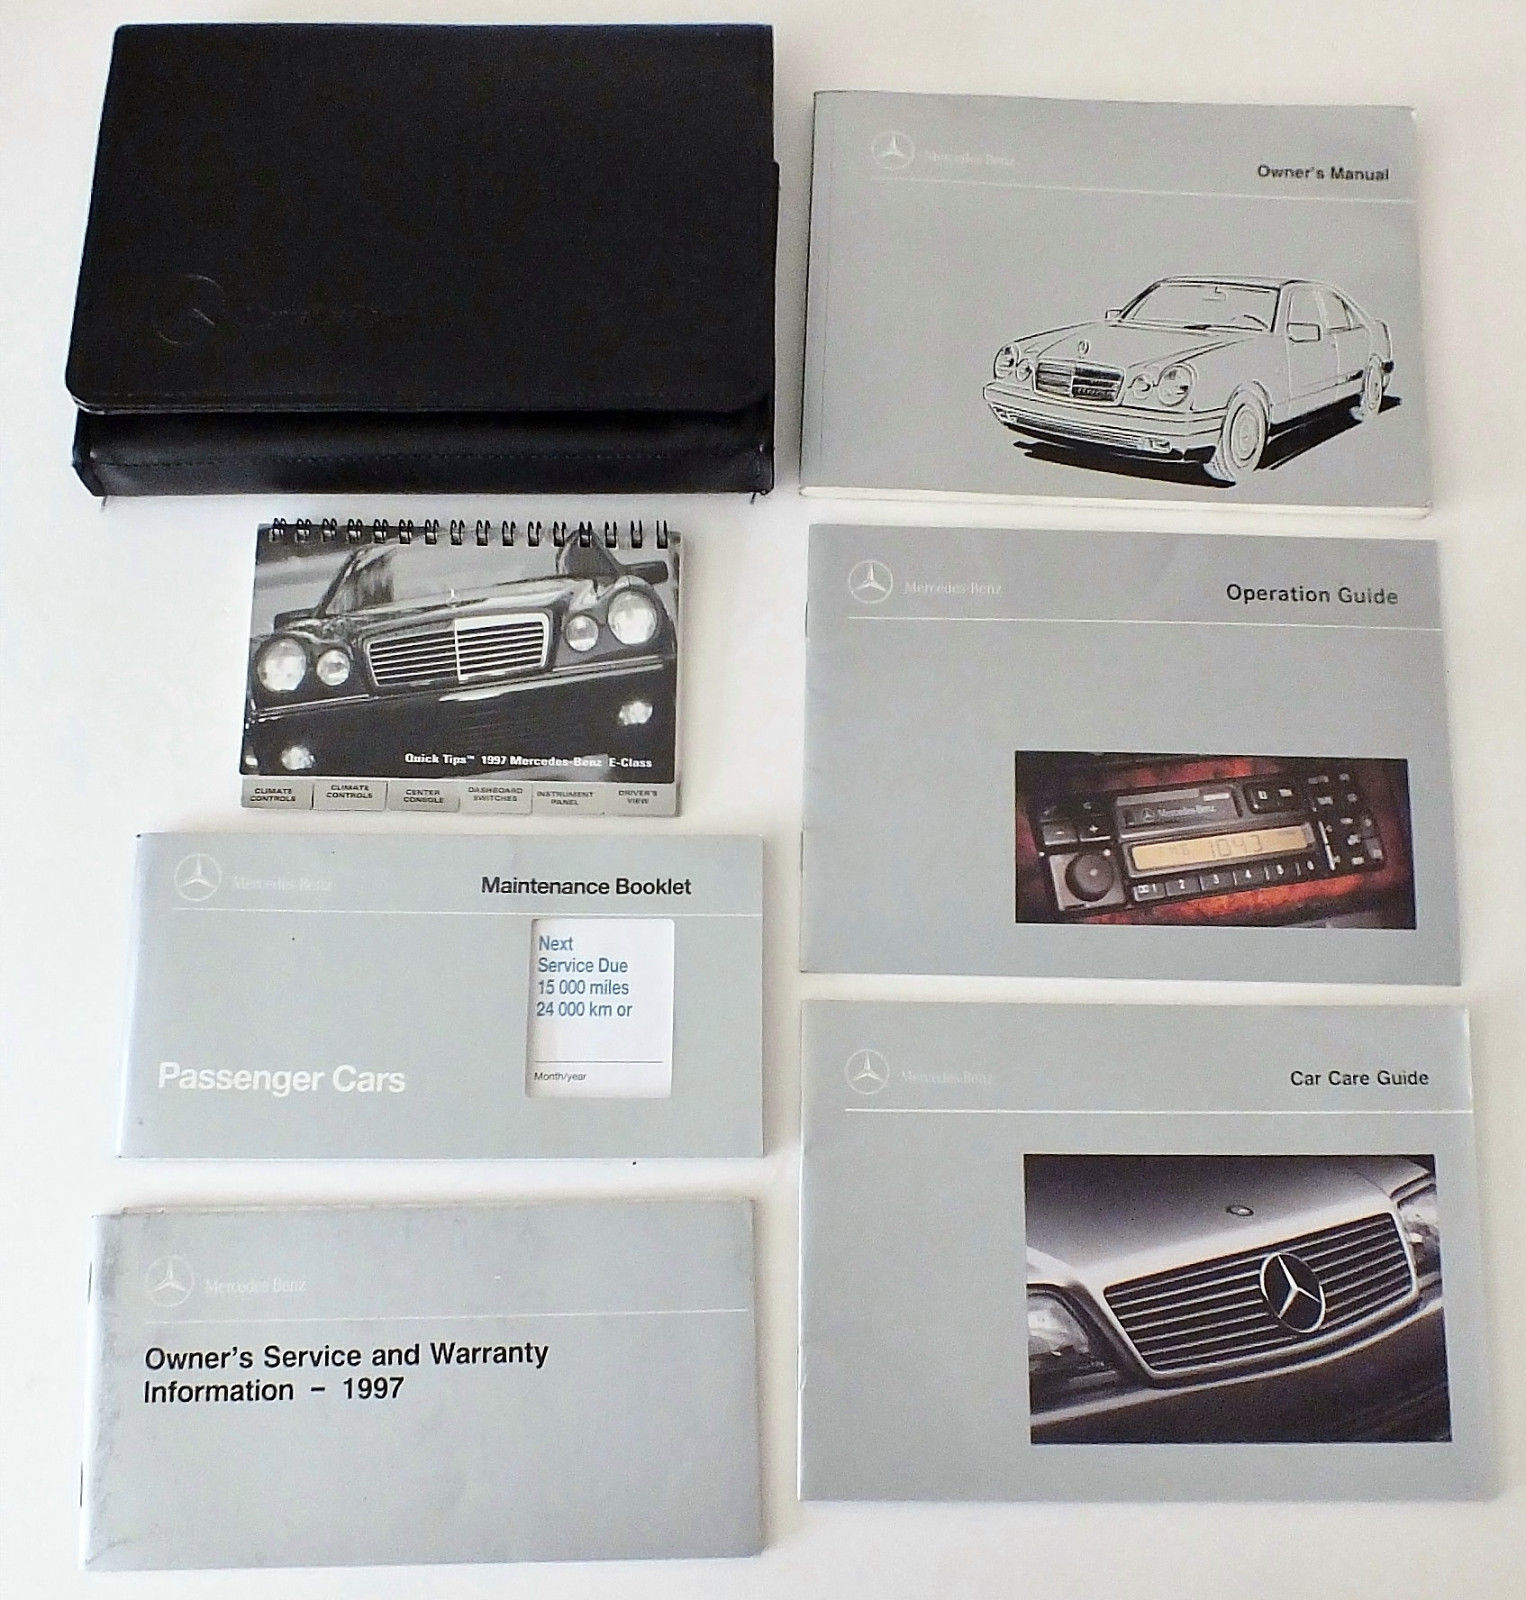 1997 mercedes e420 owners manual wiring diagram 1997 mercedes benz e300 diesel e320 e420 and 35 similar items rh bonanza com 1997 mercedes e420 repair manual 1997 mercedes e420 service manual publicscrutiny Image collections